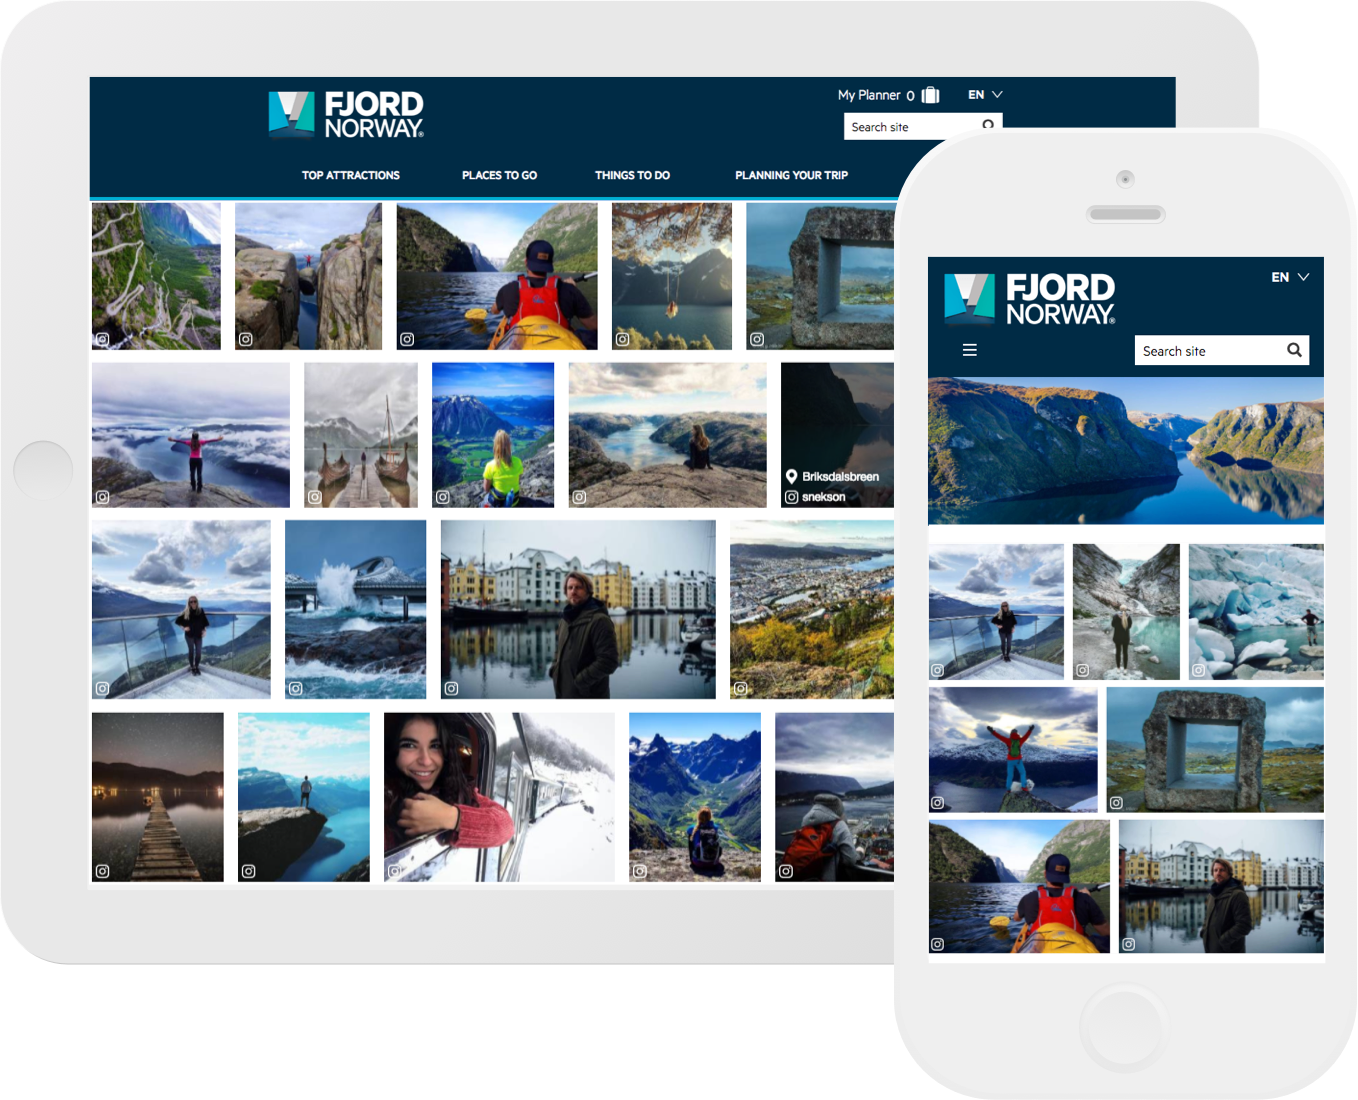 Ipad and Iphone displays showing CrowdRiff responsive galleries on the Fjord, Norway website